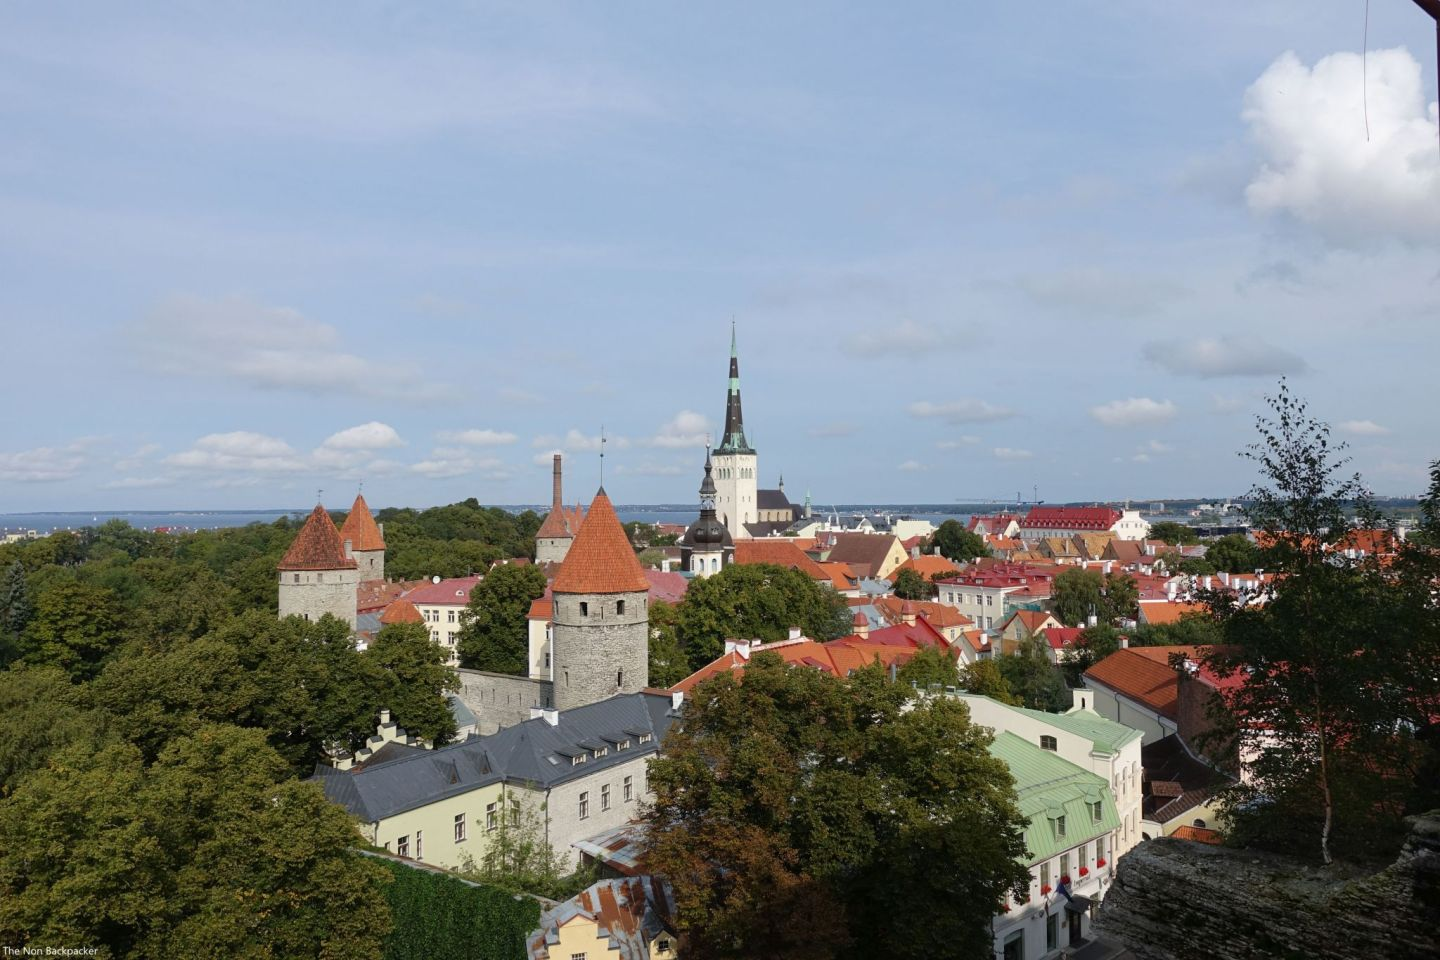 Our 36 hours in Tallinn